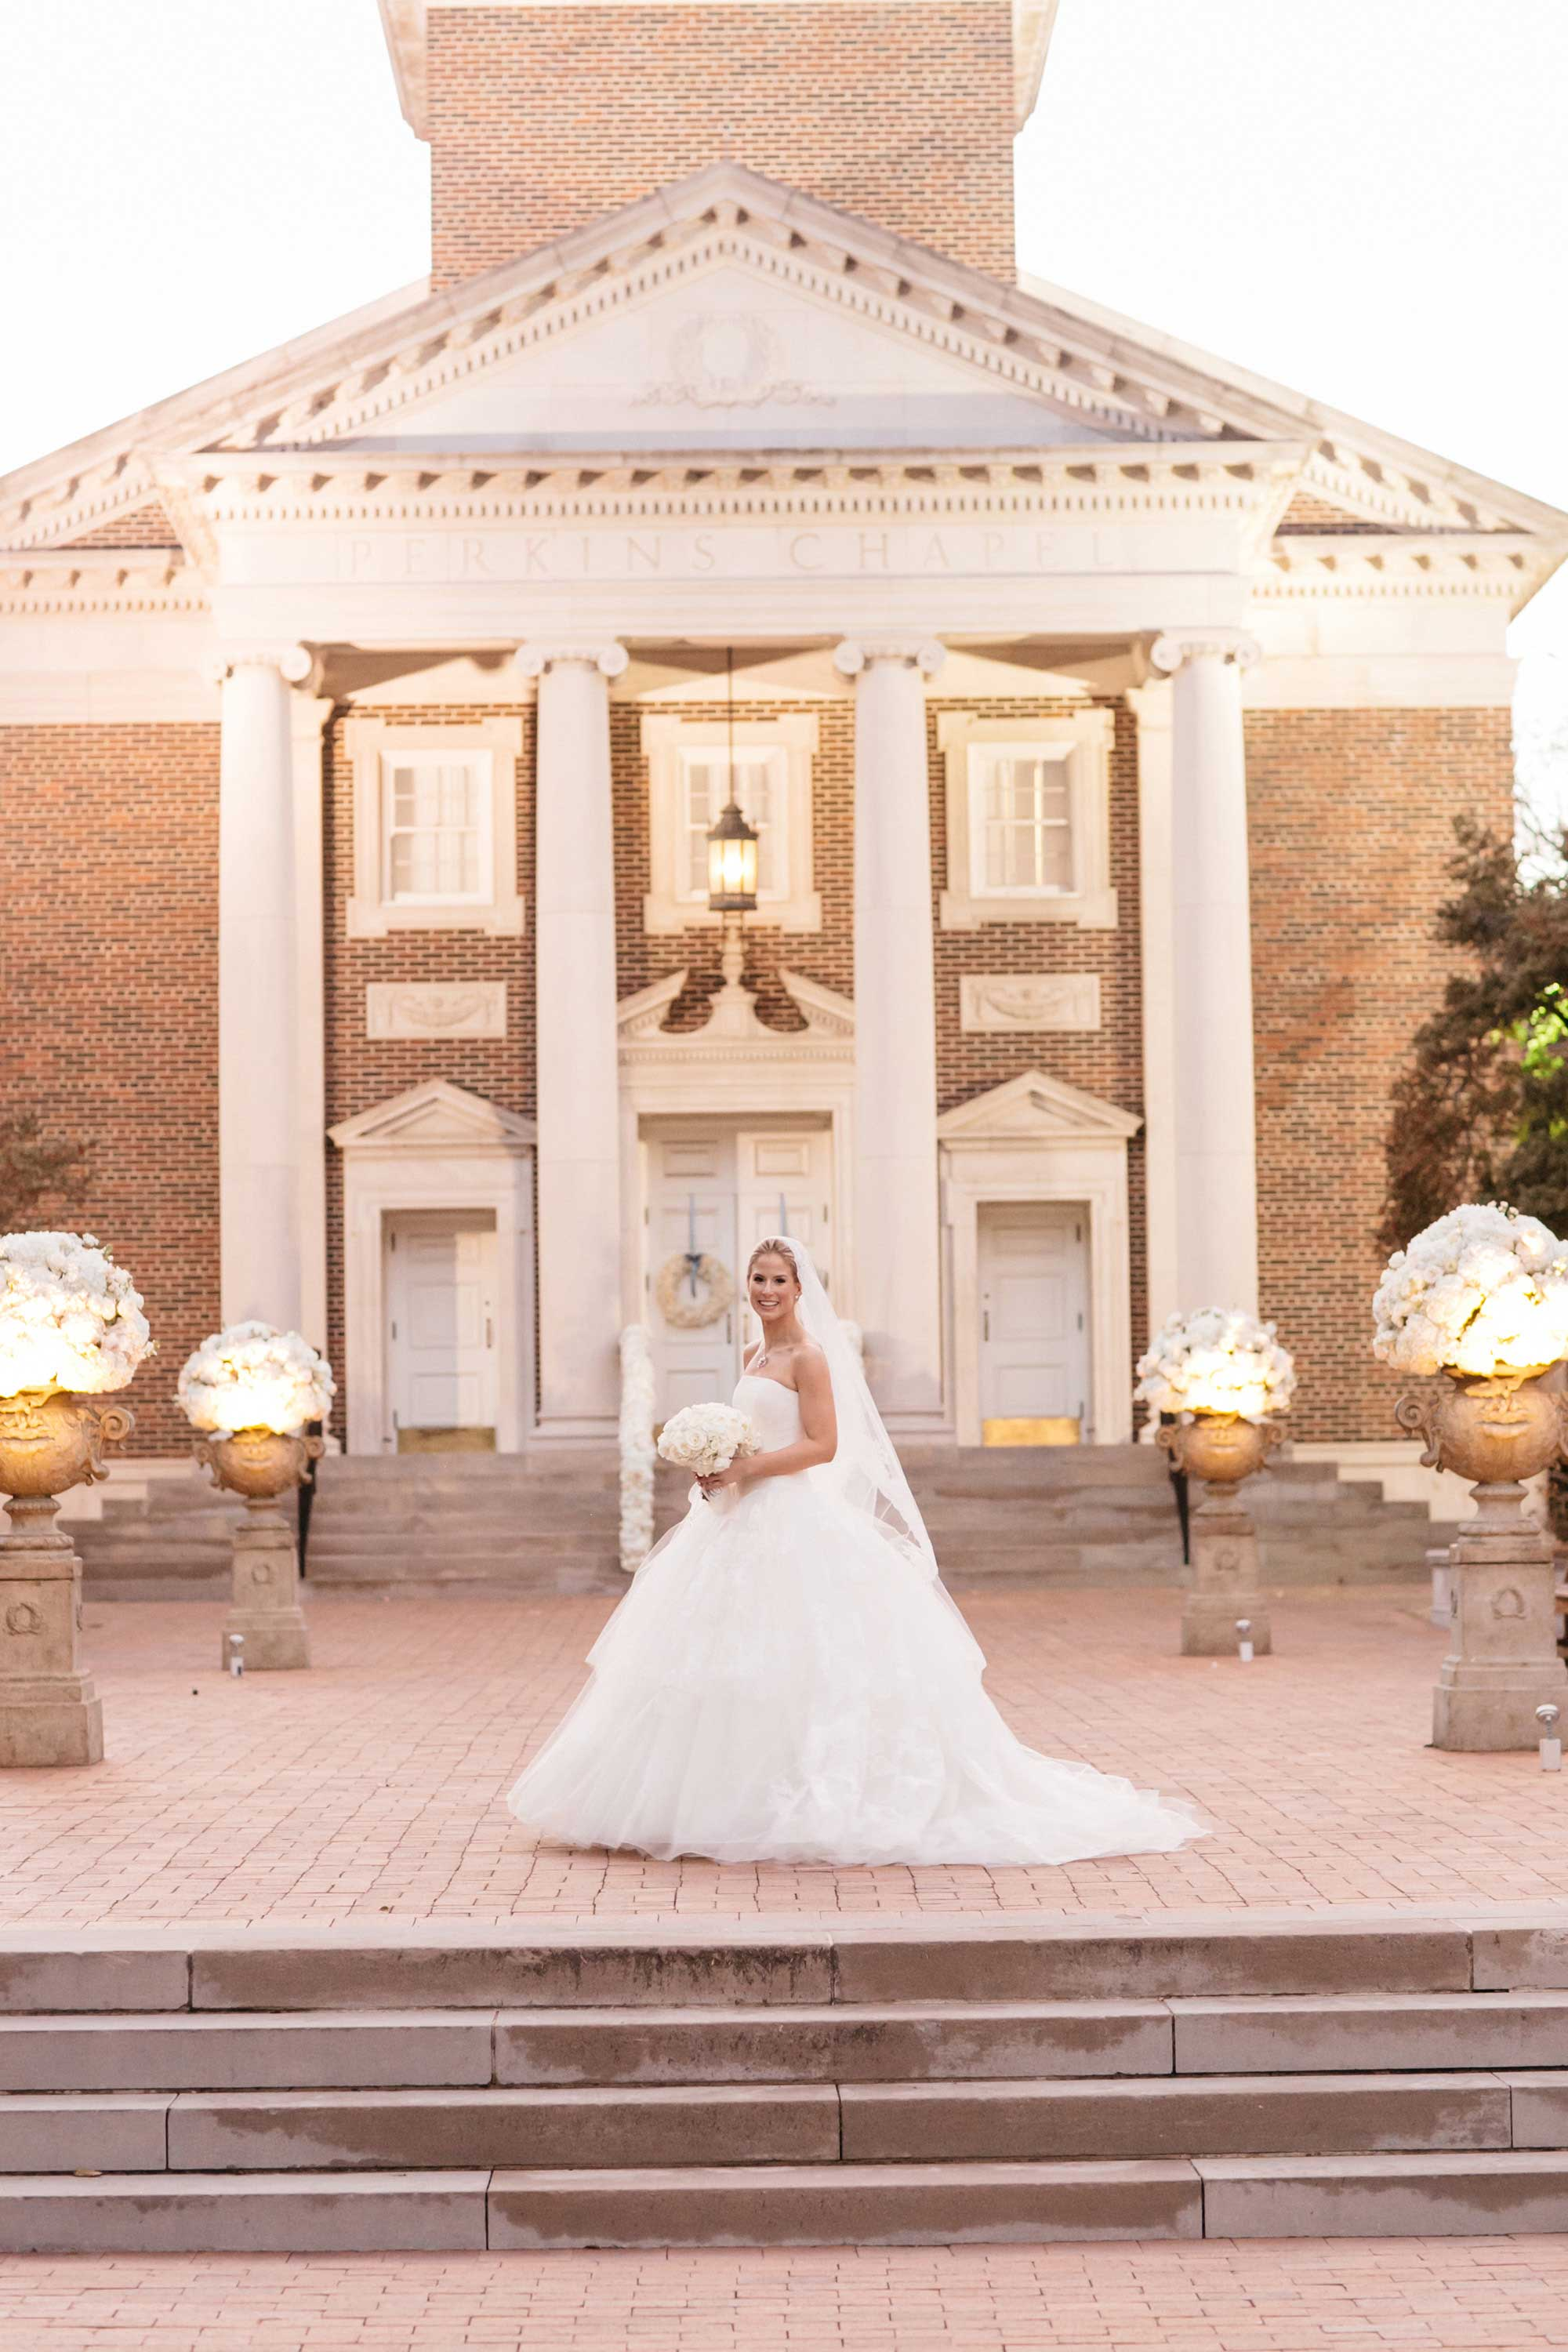 Bride in front of church wedding southern karlisch photography